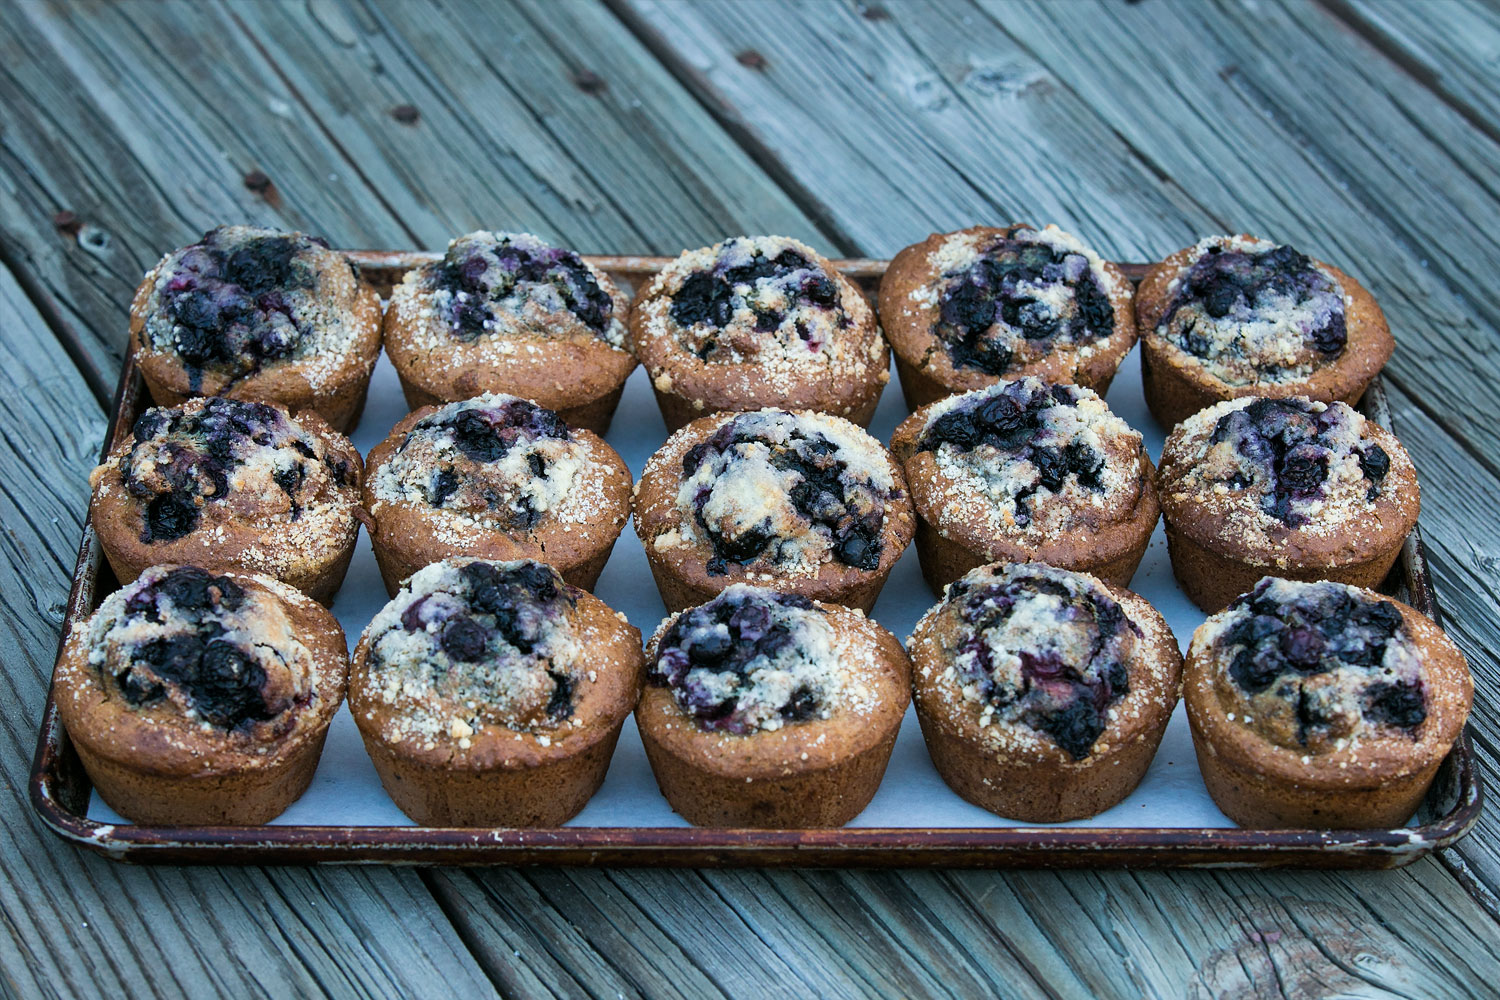 beanery-cafe-gallery-muffins.jpg